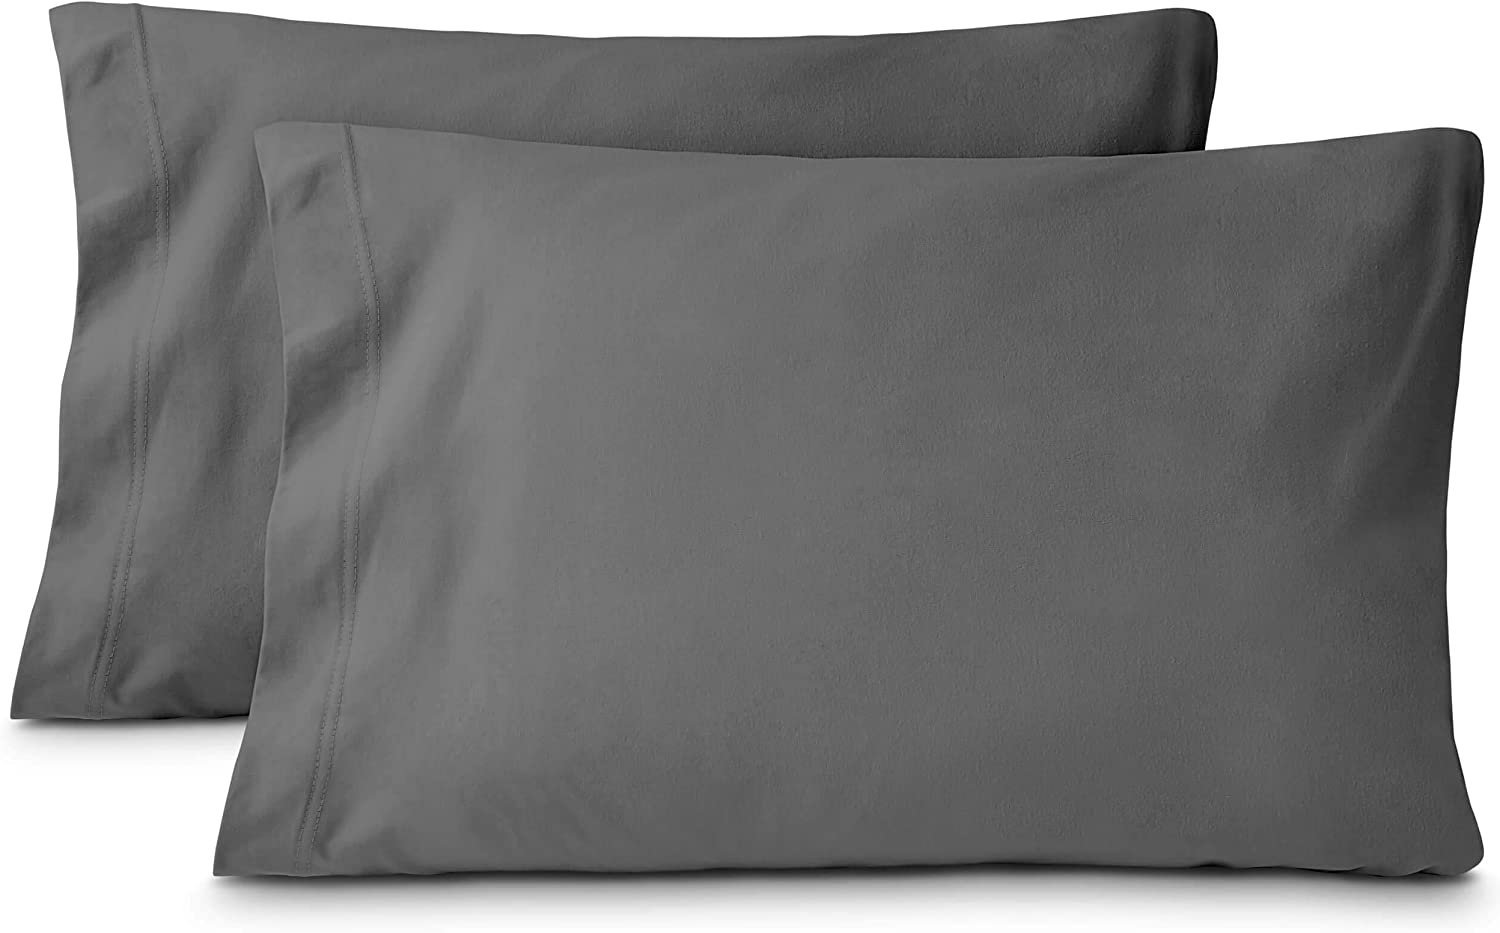 Bare Home Jersey Knit 100% Cotton (T-Shirt) Pillow Case Set - All Season - Cozy Pillowcases (Standard Pillowcase Set of 2, Grey)